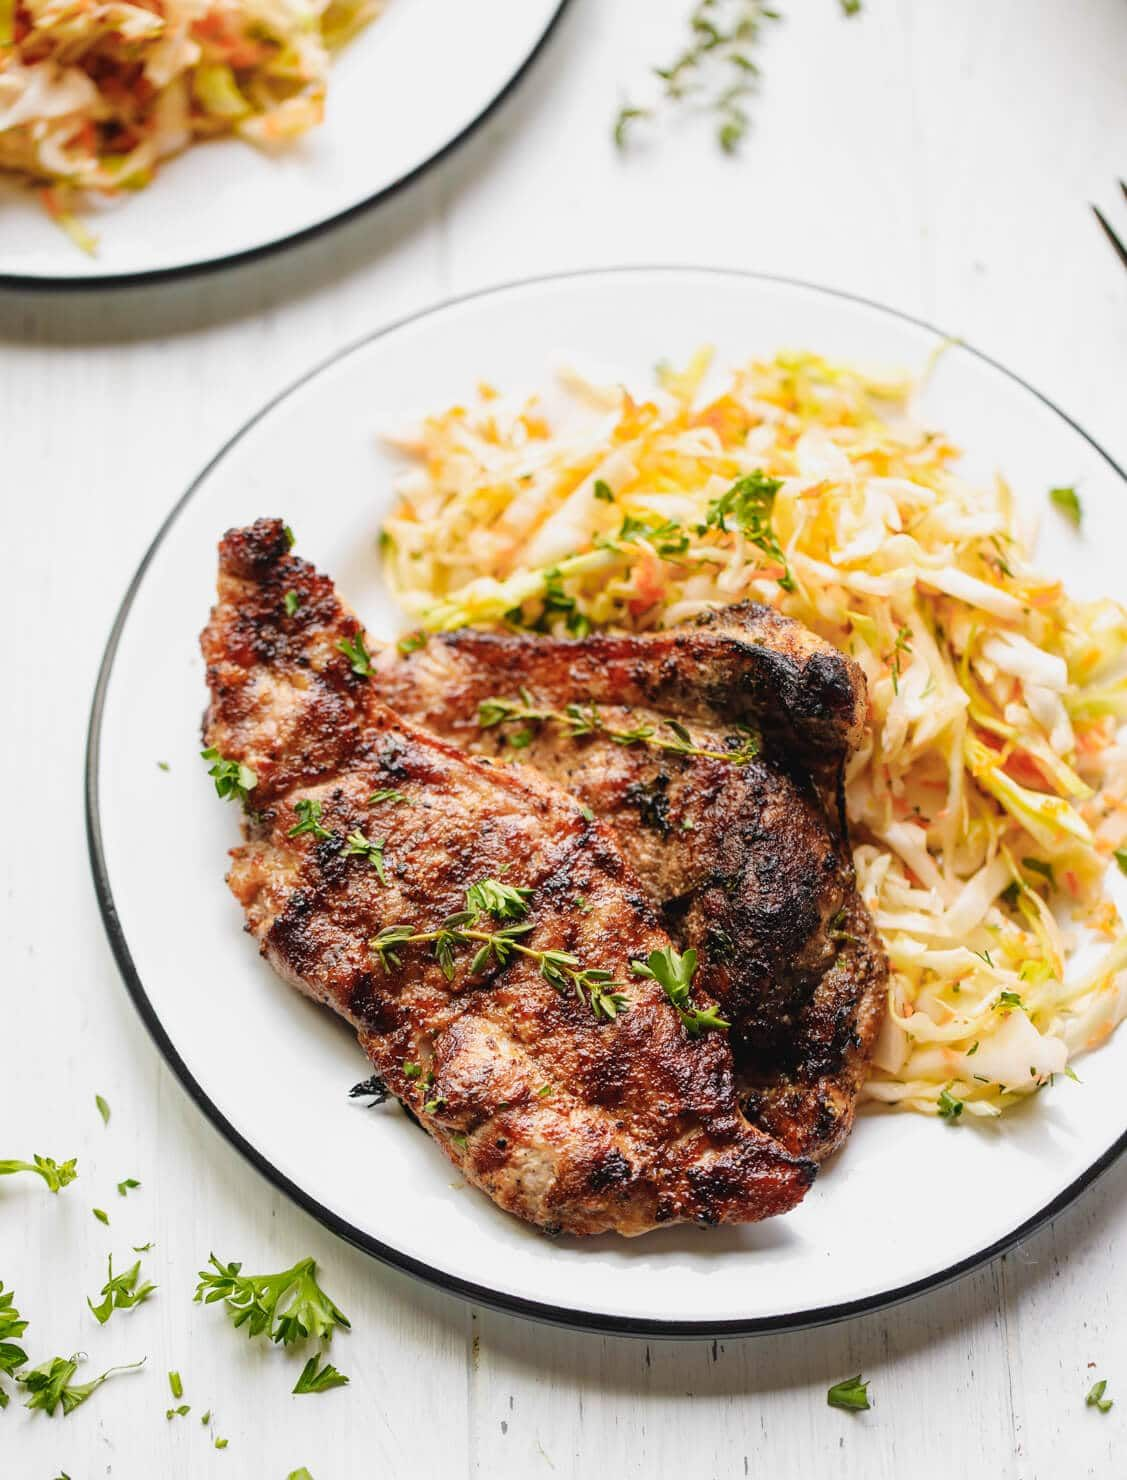 How to cook pork shoulder steak simple and delicious